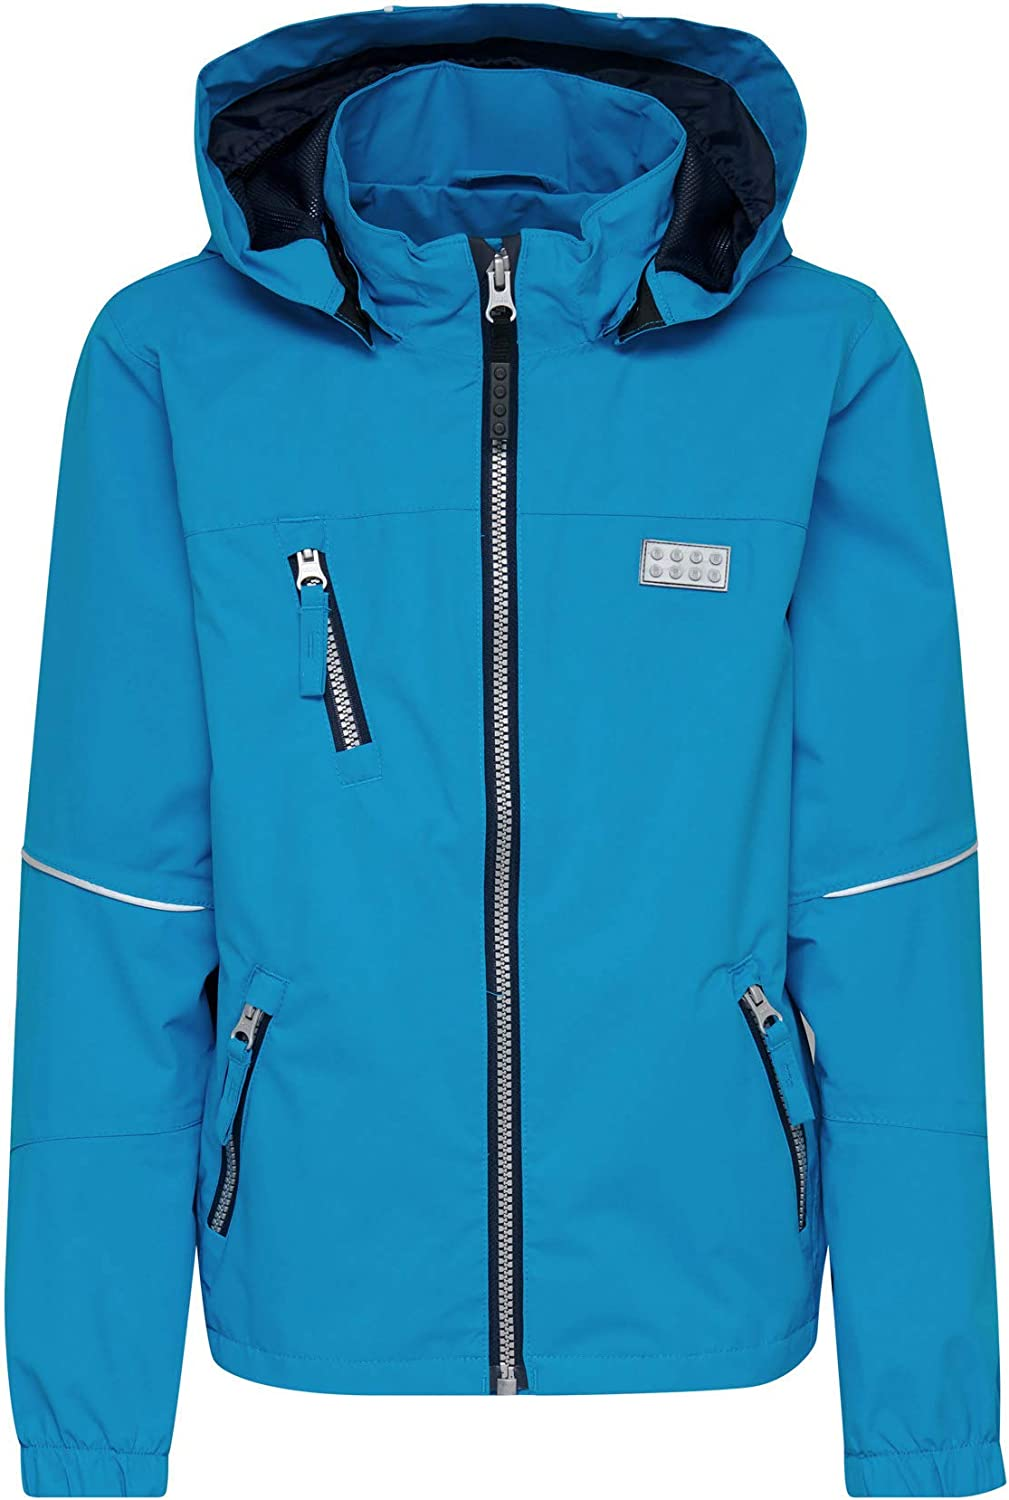 LEGO Wear Kids Max 81% OFF Some reservation Softshell with Jacket Hood Detachable